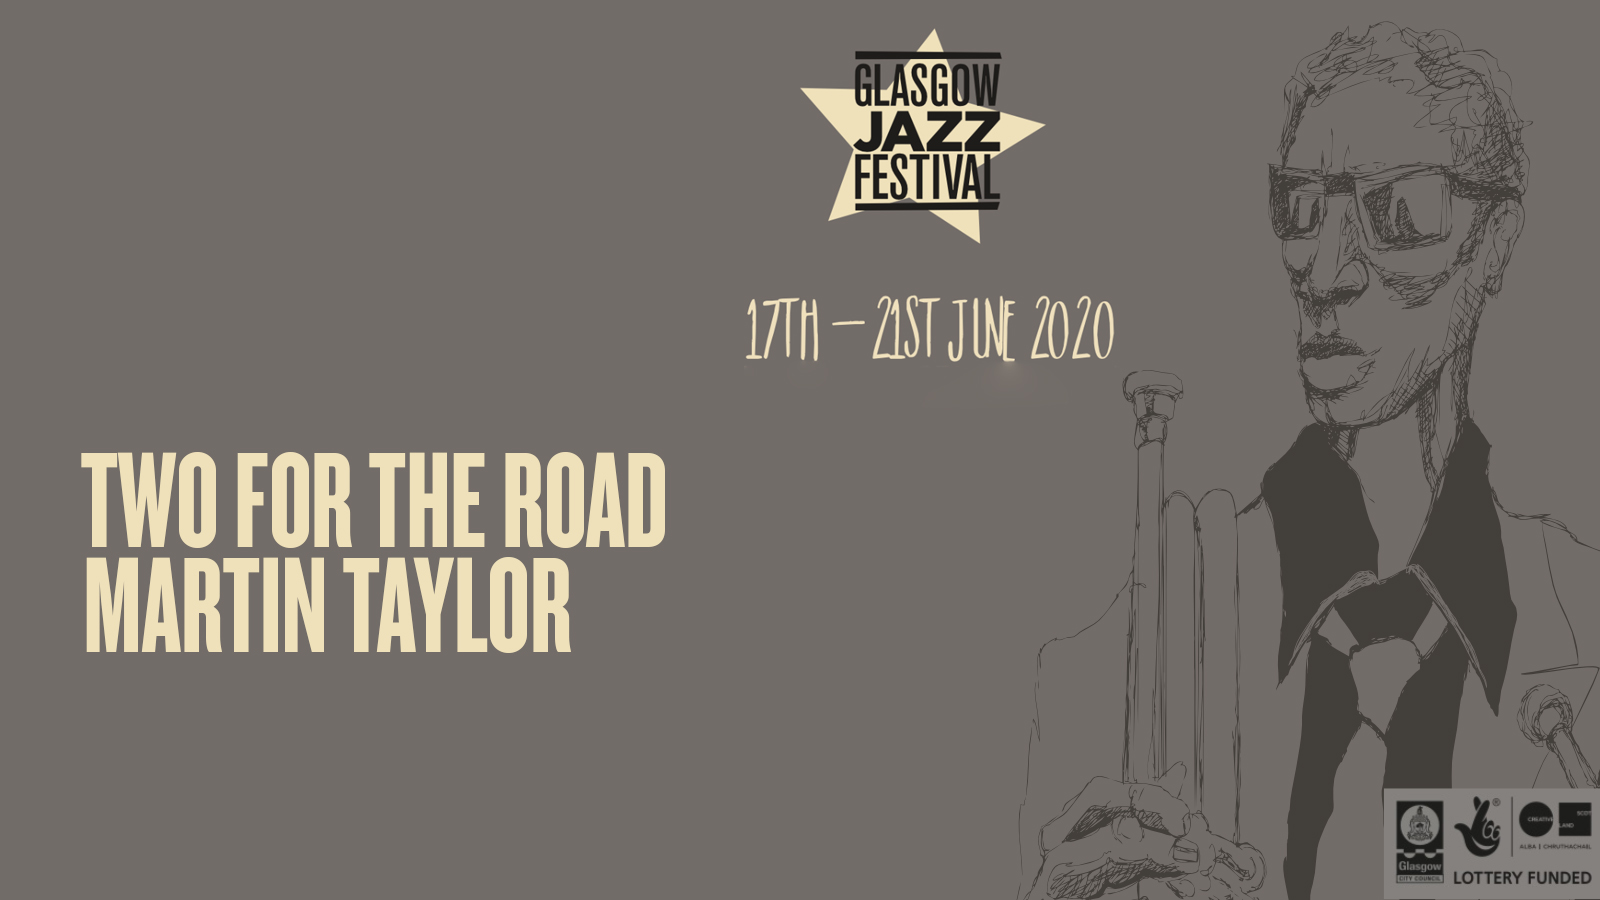 TWO FOR THE ROAD - MARTIN TAYLOR